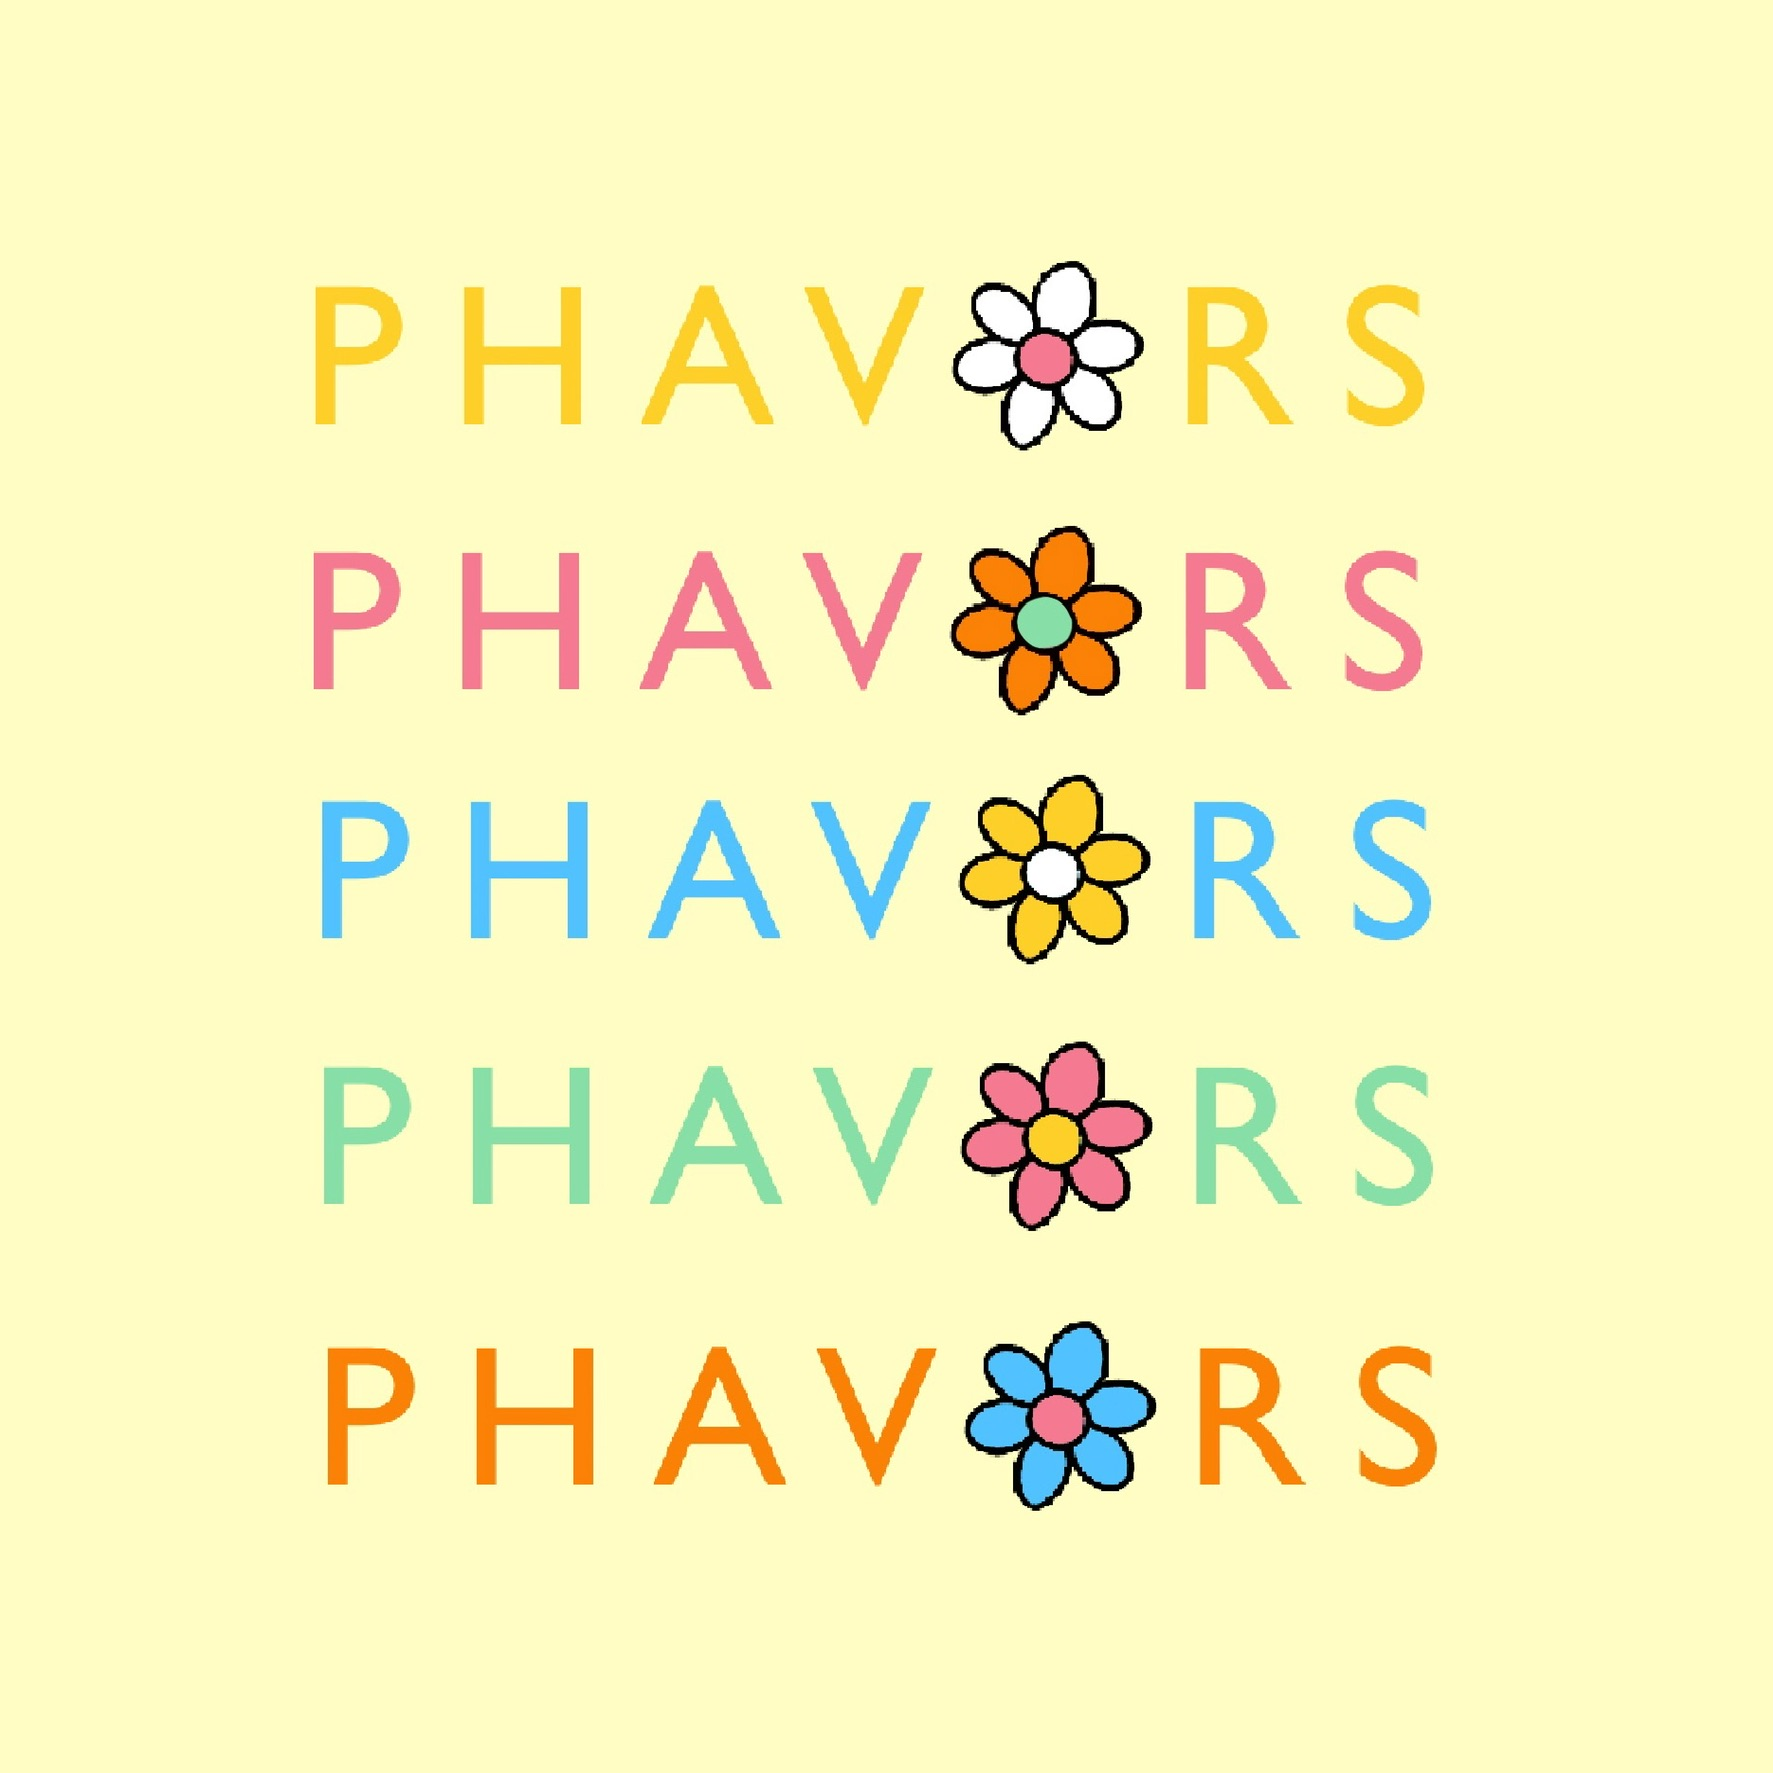 Phavors logo graphic